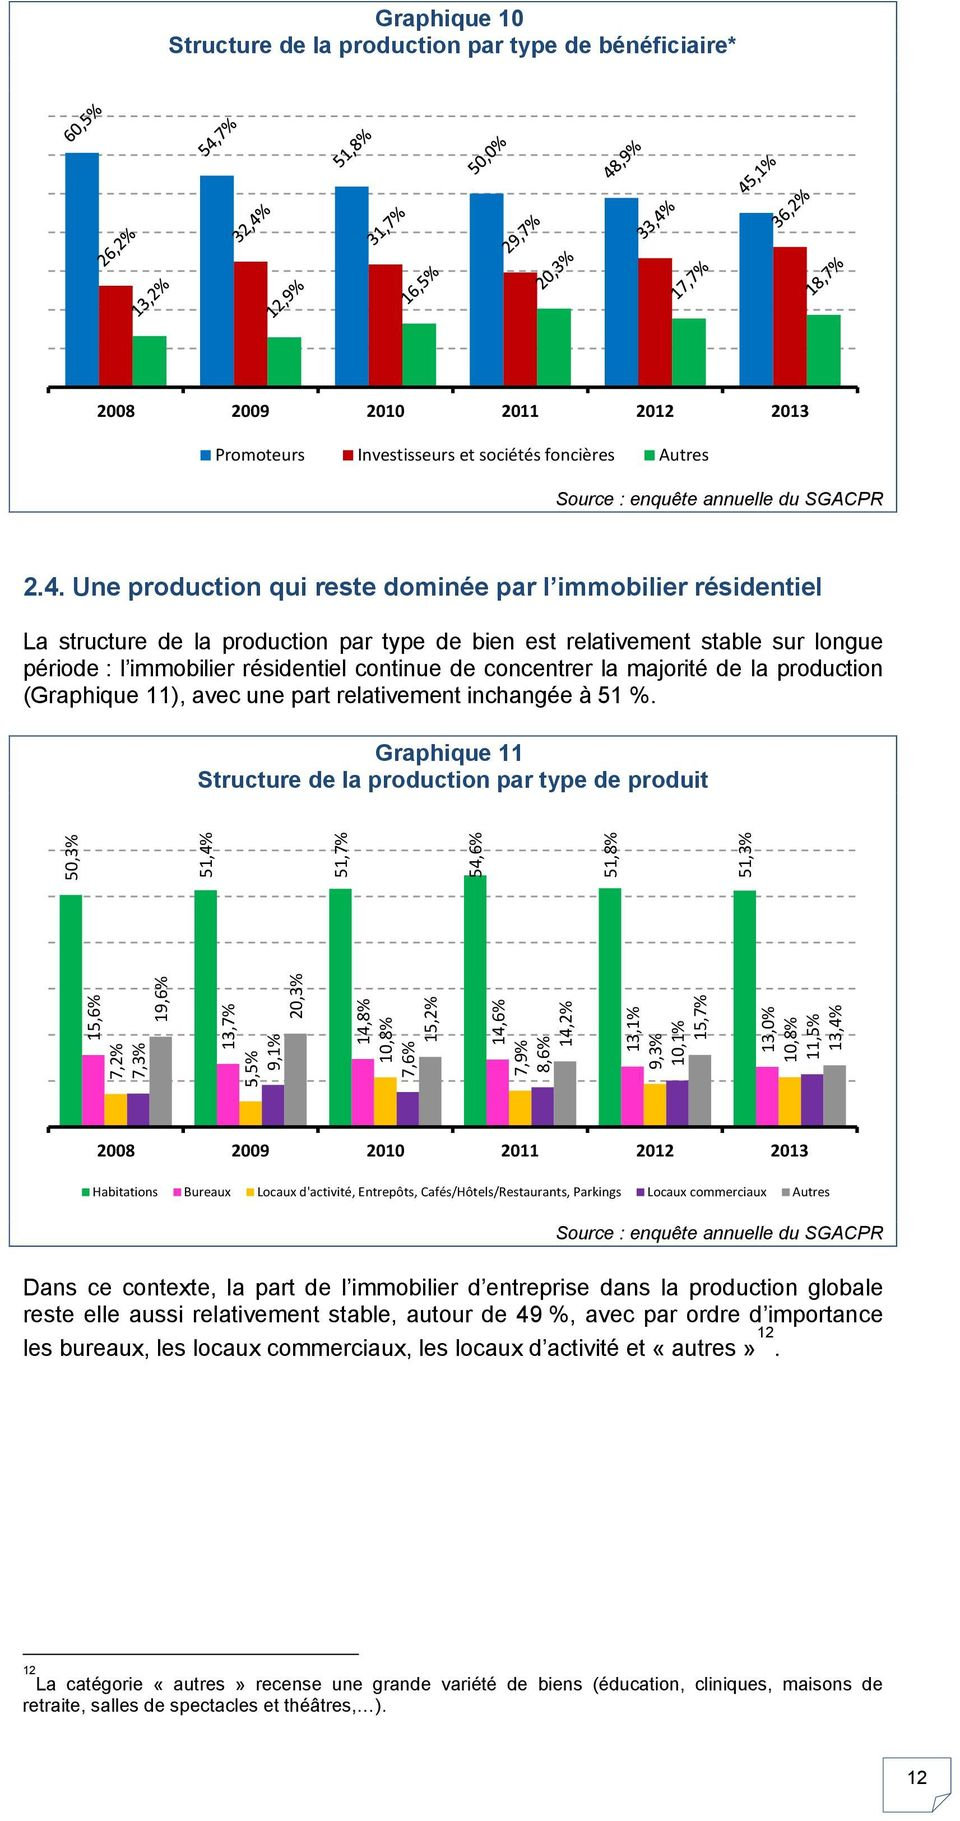 concentrer la majorité de la production (Graphique 11), avec une part relativement inchangée à 51 %.